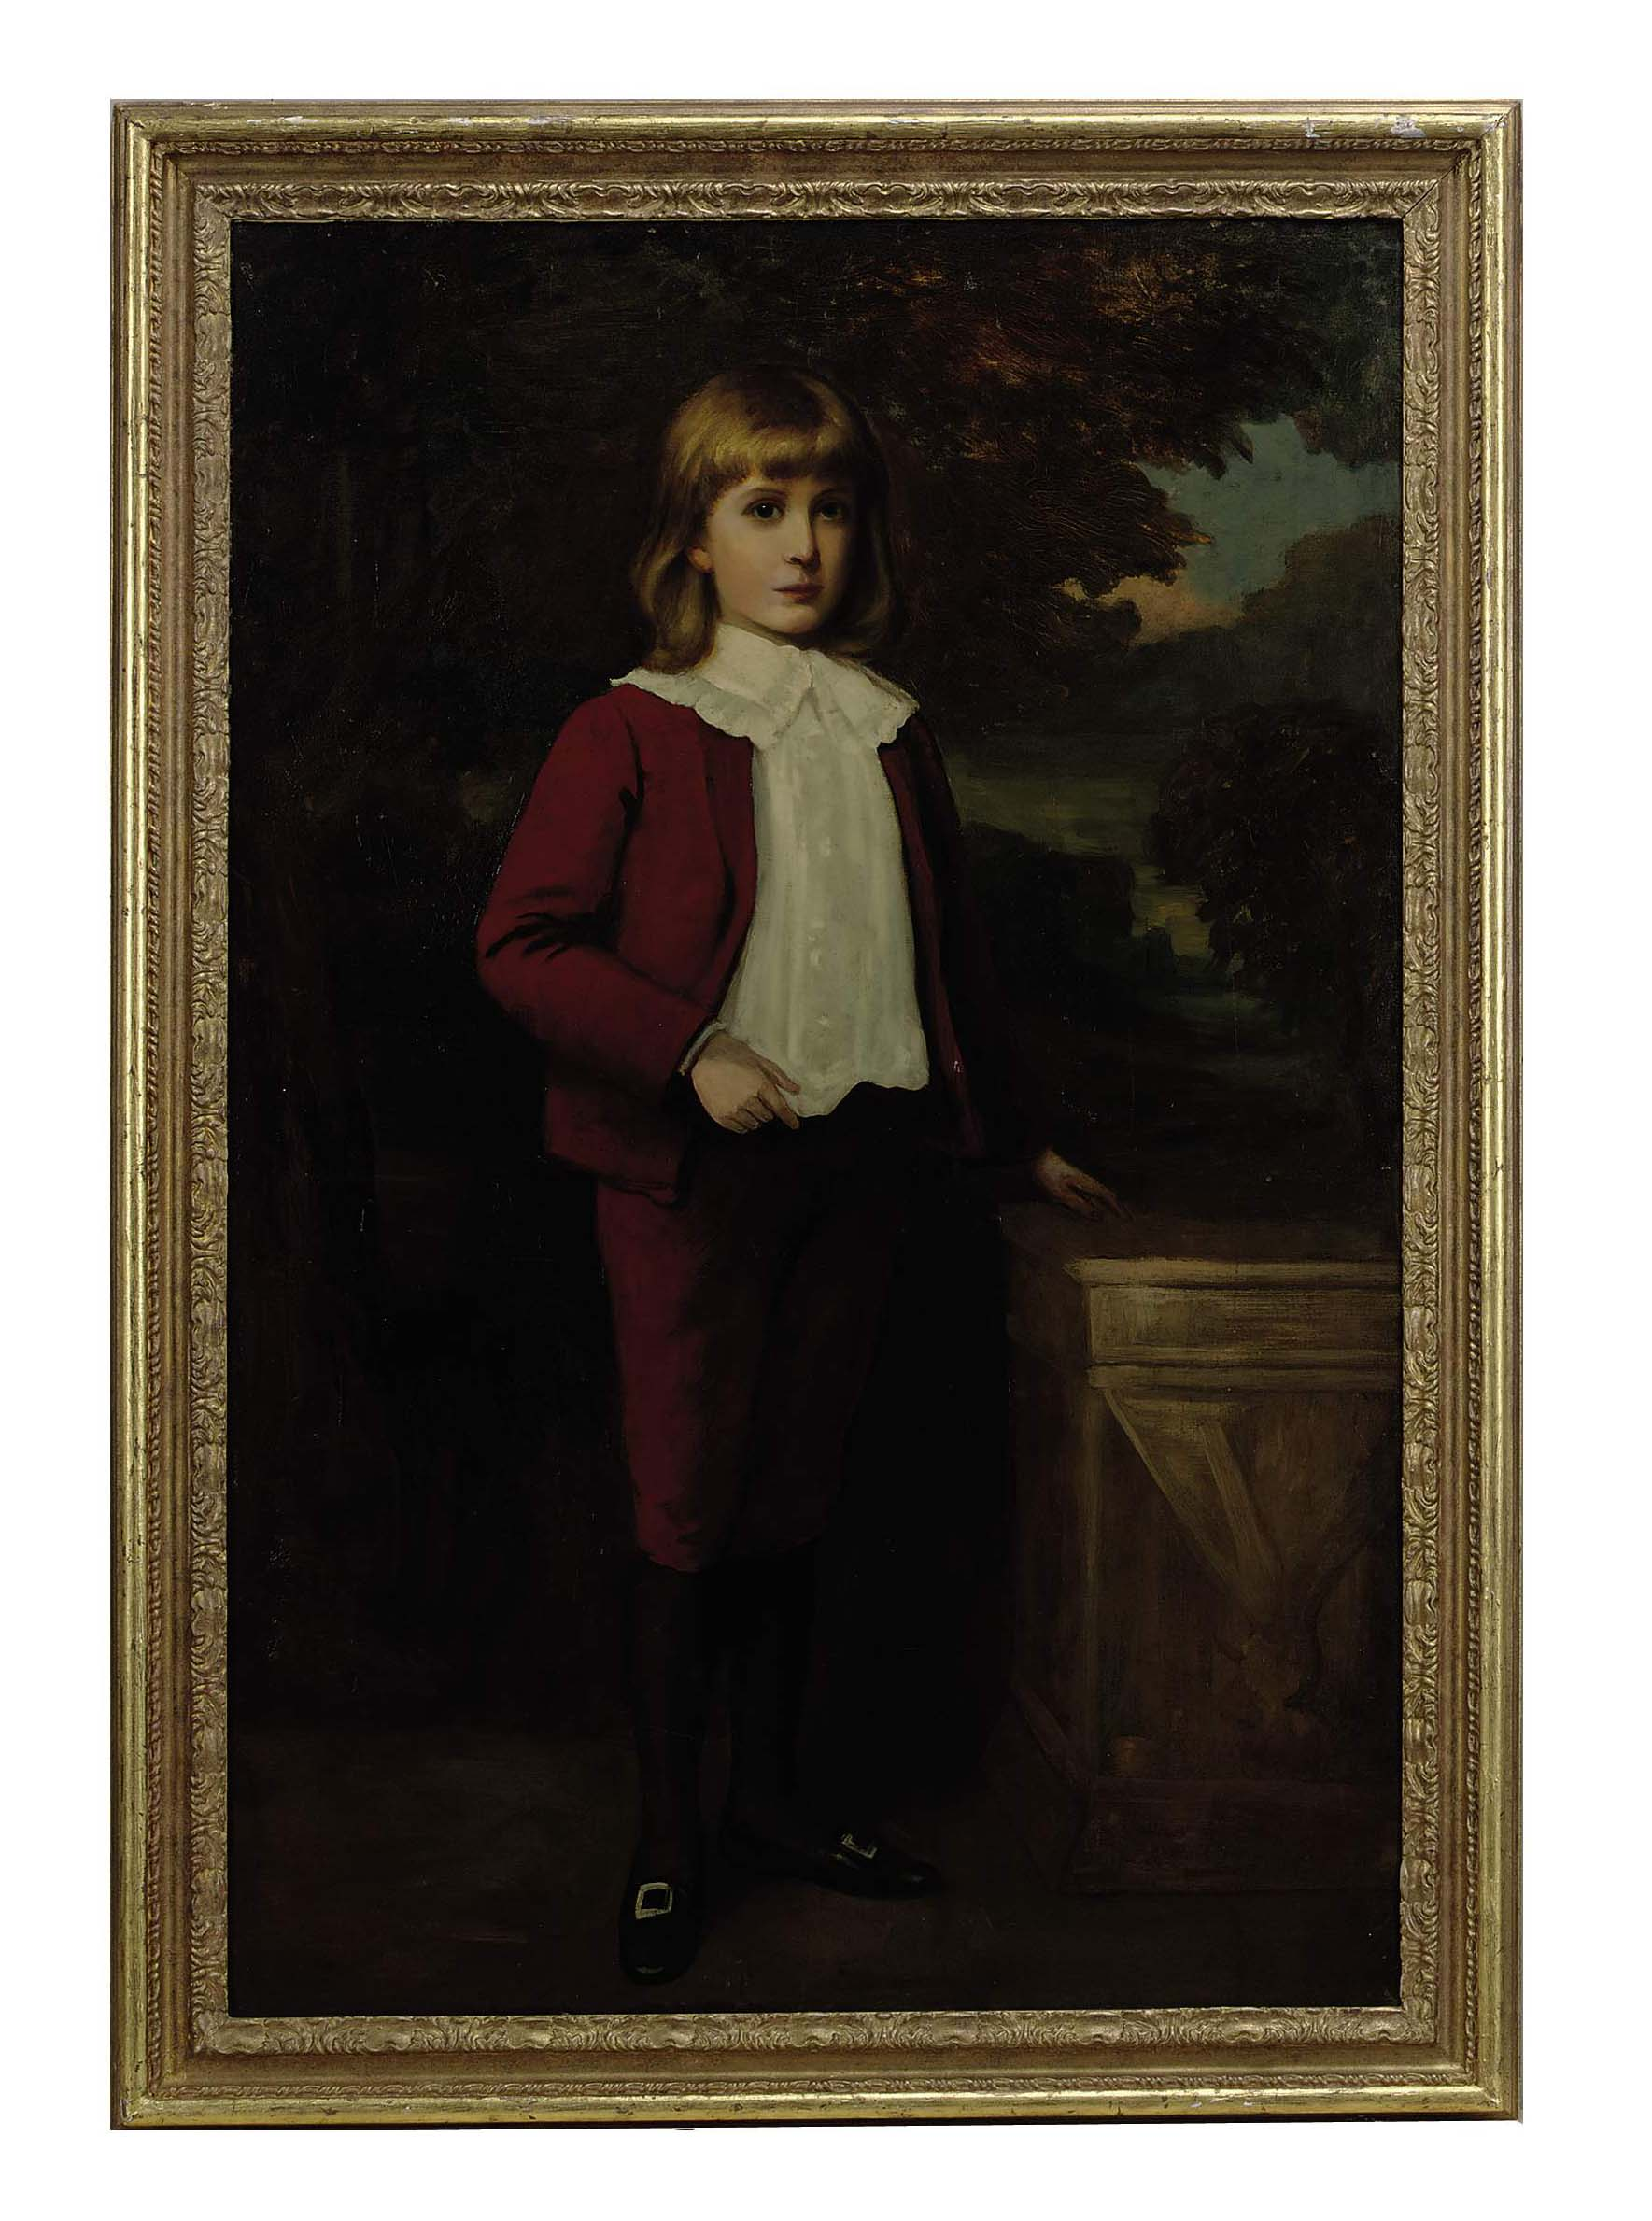 Portrait of a young boy wearing a red suit